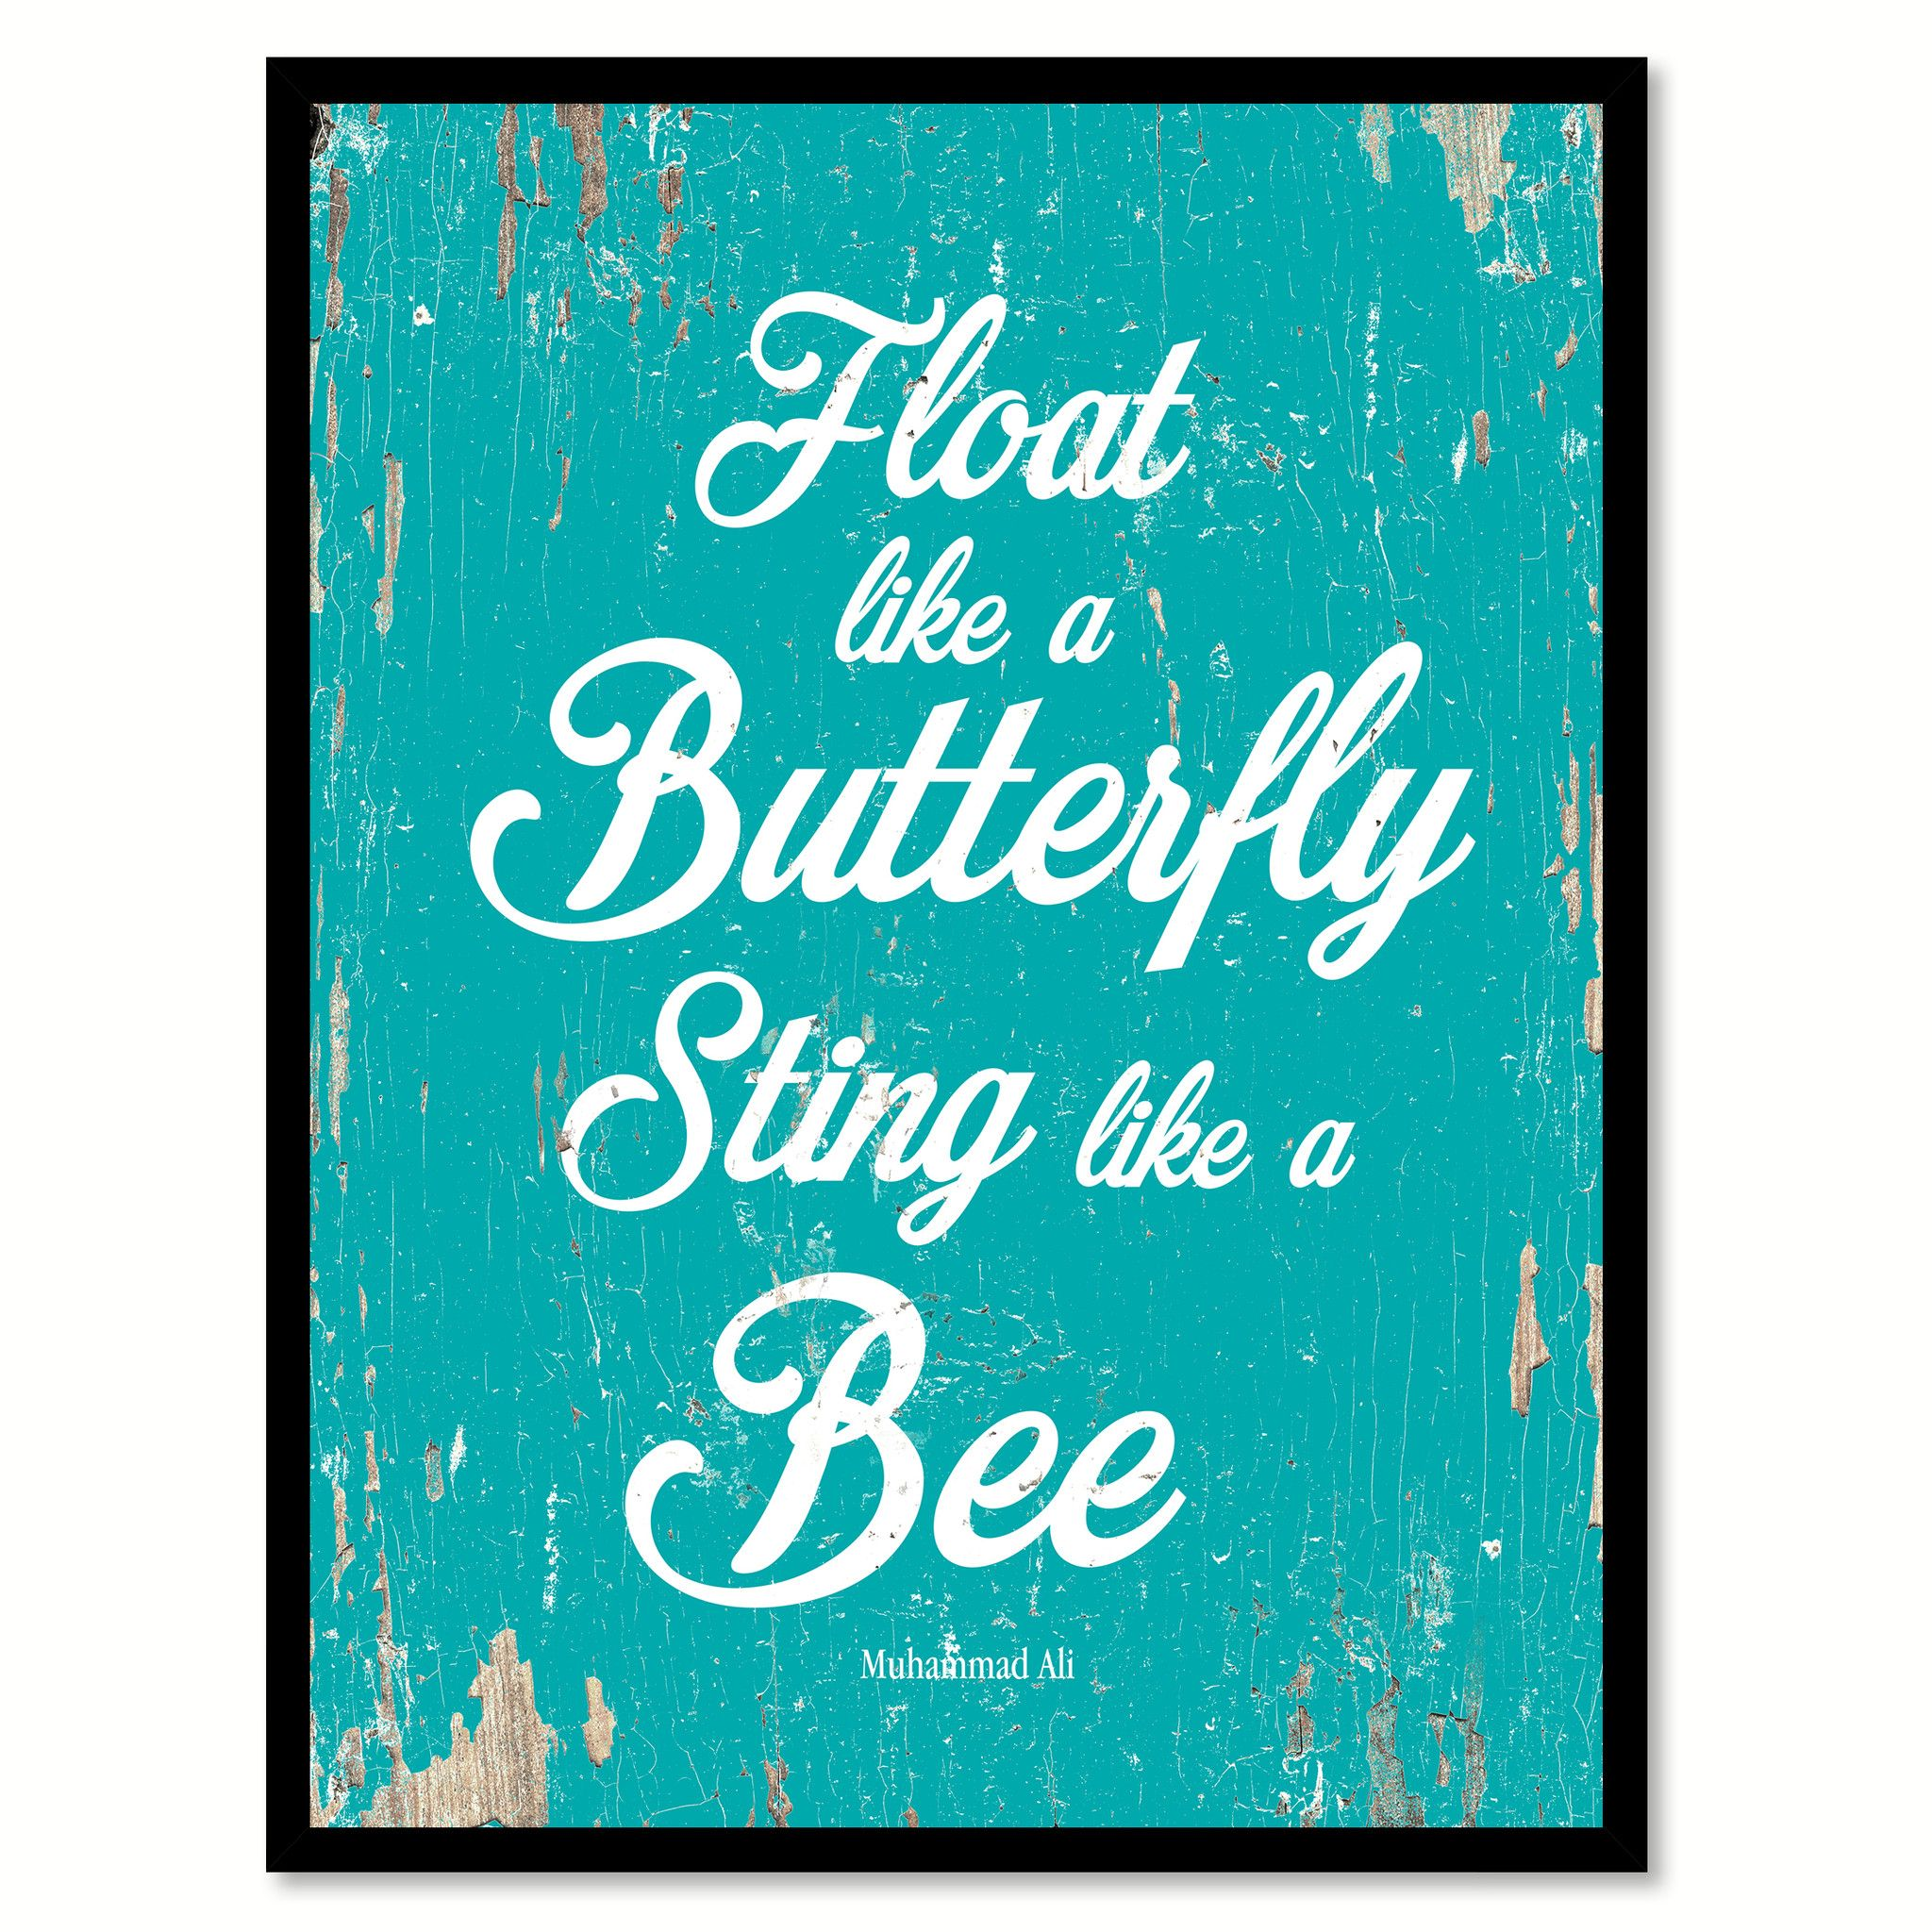 MUHAMMAD ALI FLOAT LIKE A BUTTERFLY STING LIKE A BEE PHOTO ON FRAMED CANVAS ART Art